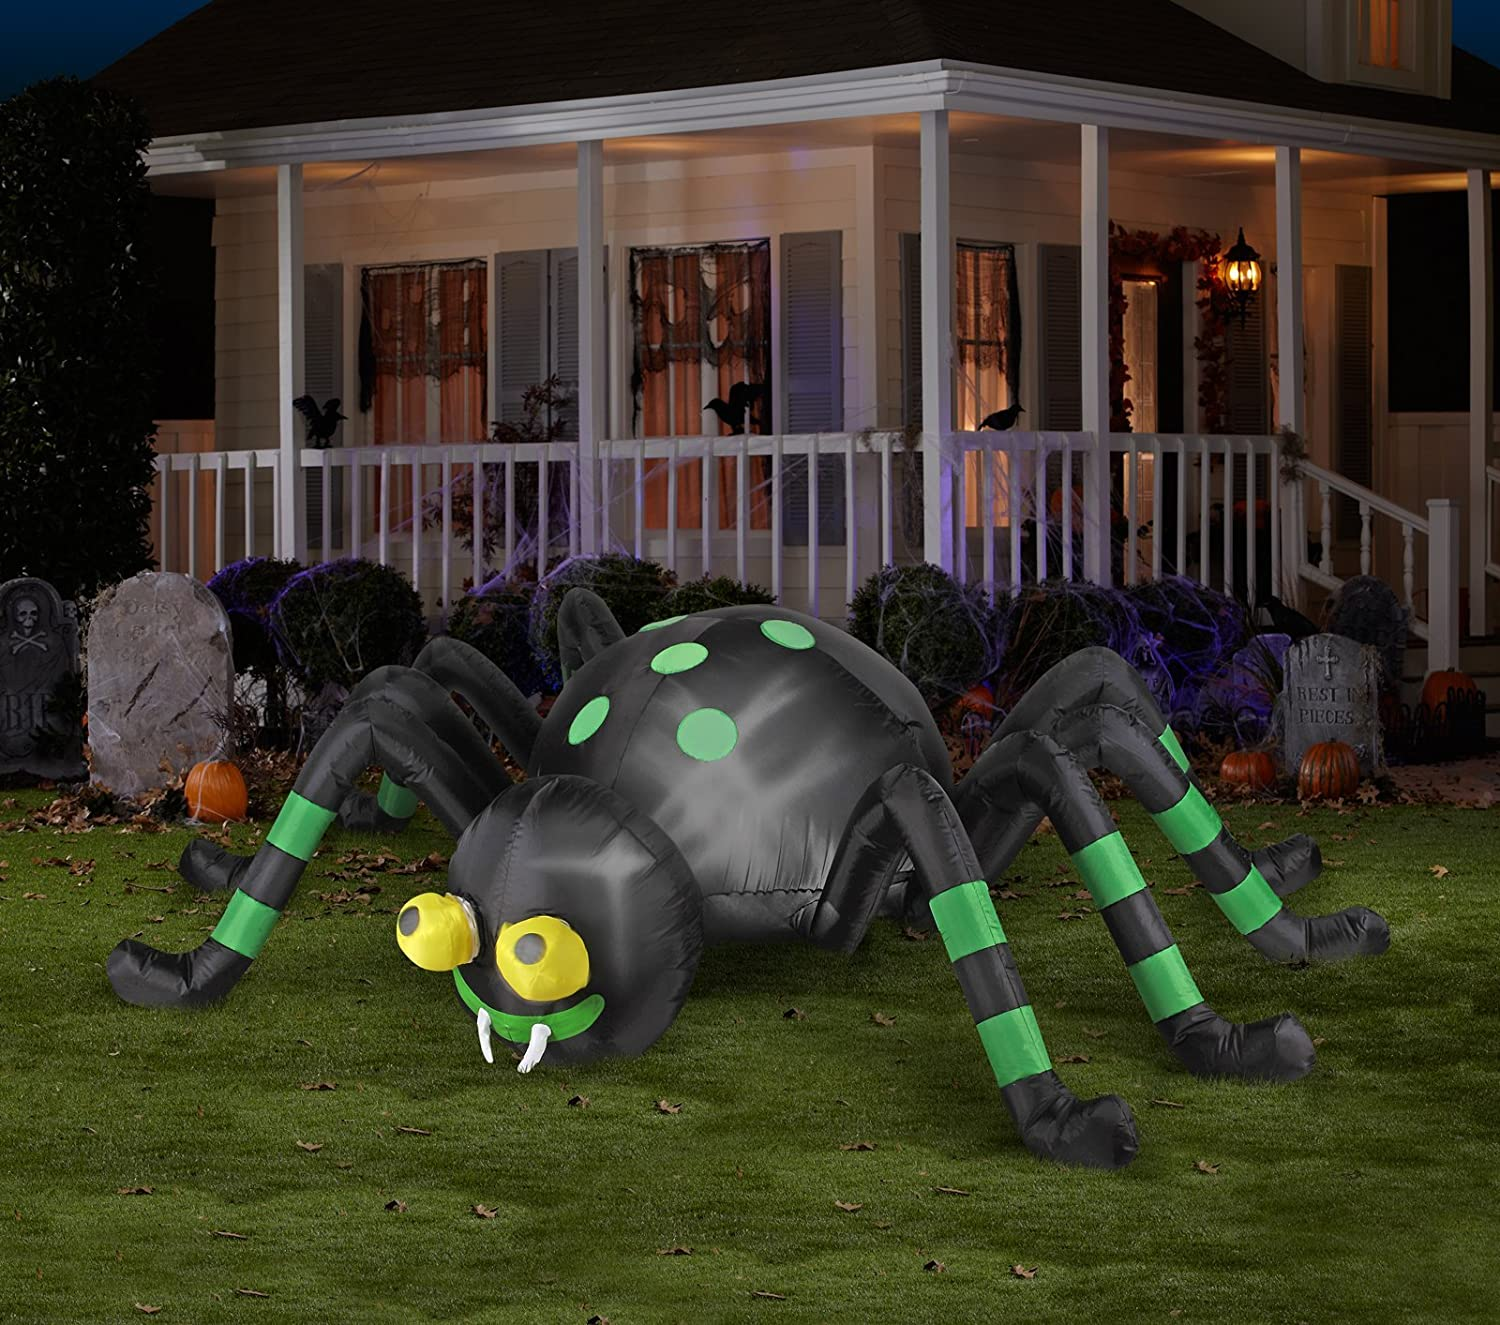 amazoncom halloween inflatable 8 animated spider with spinning eyes by gemmy patio lawn garden